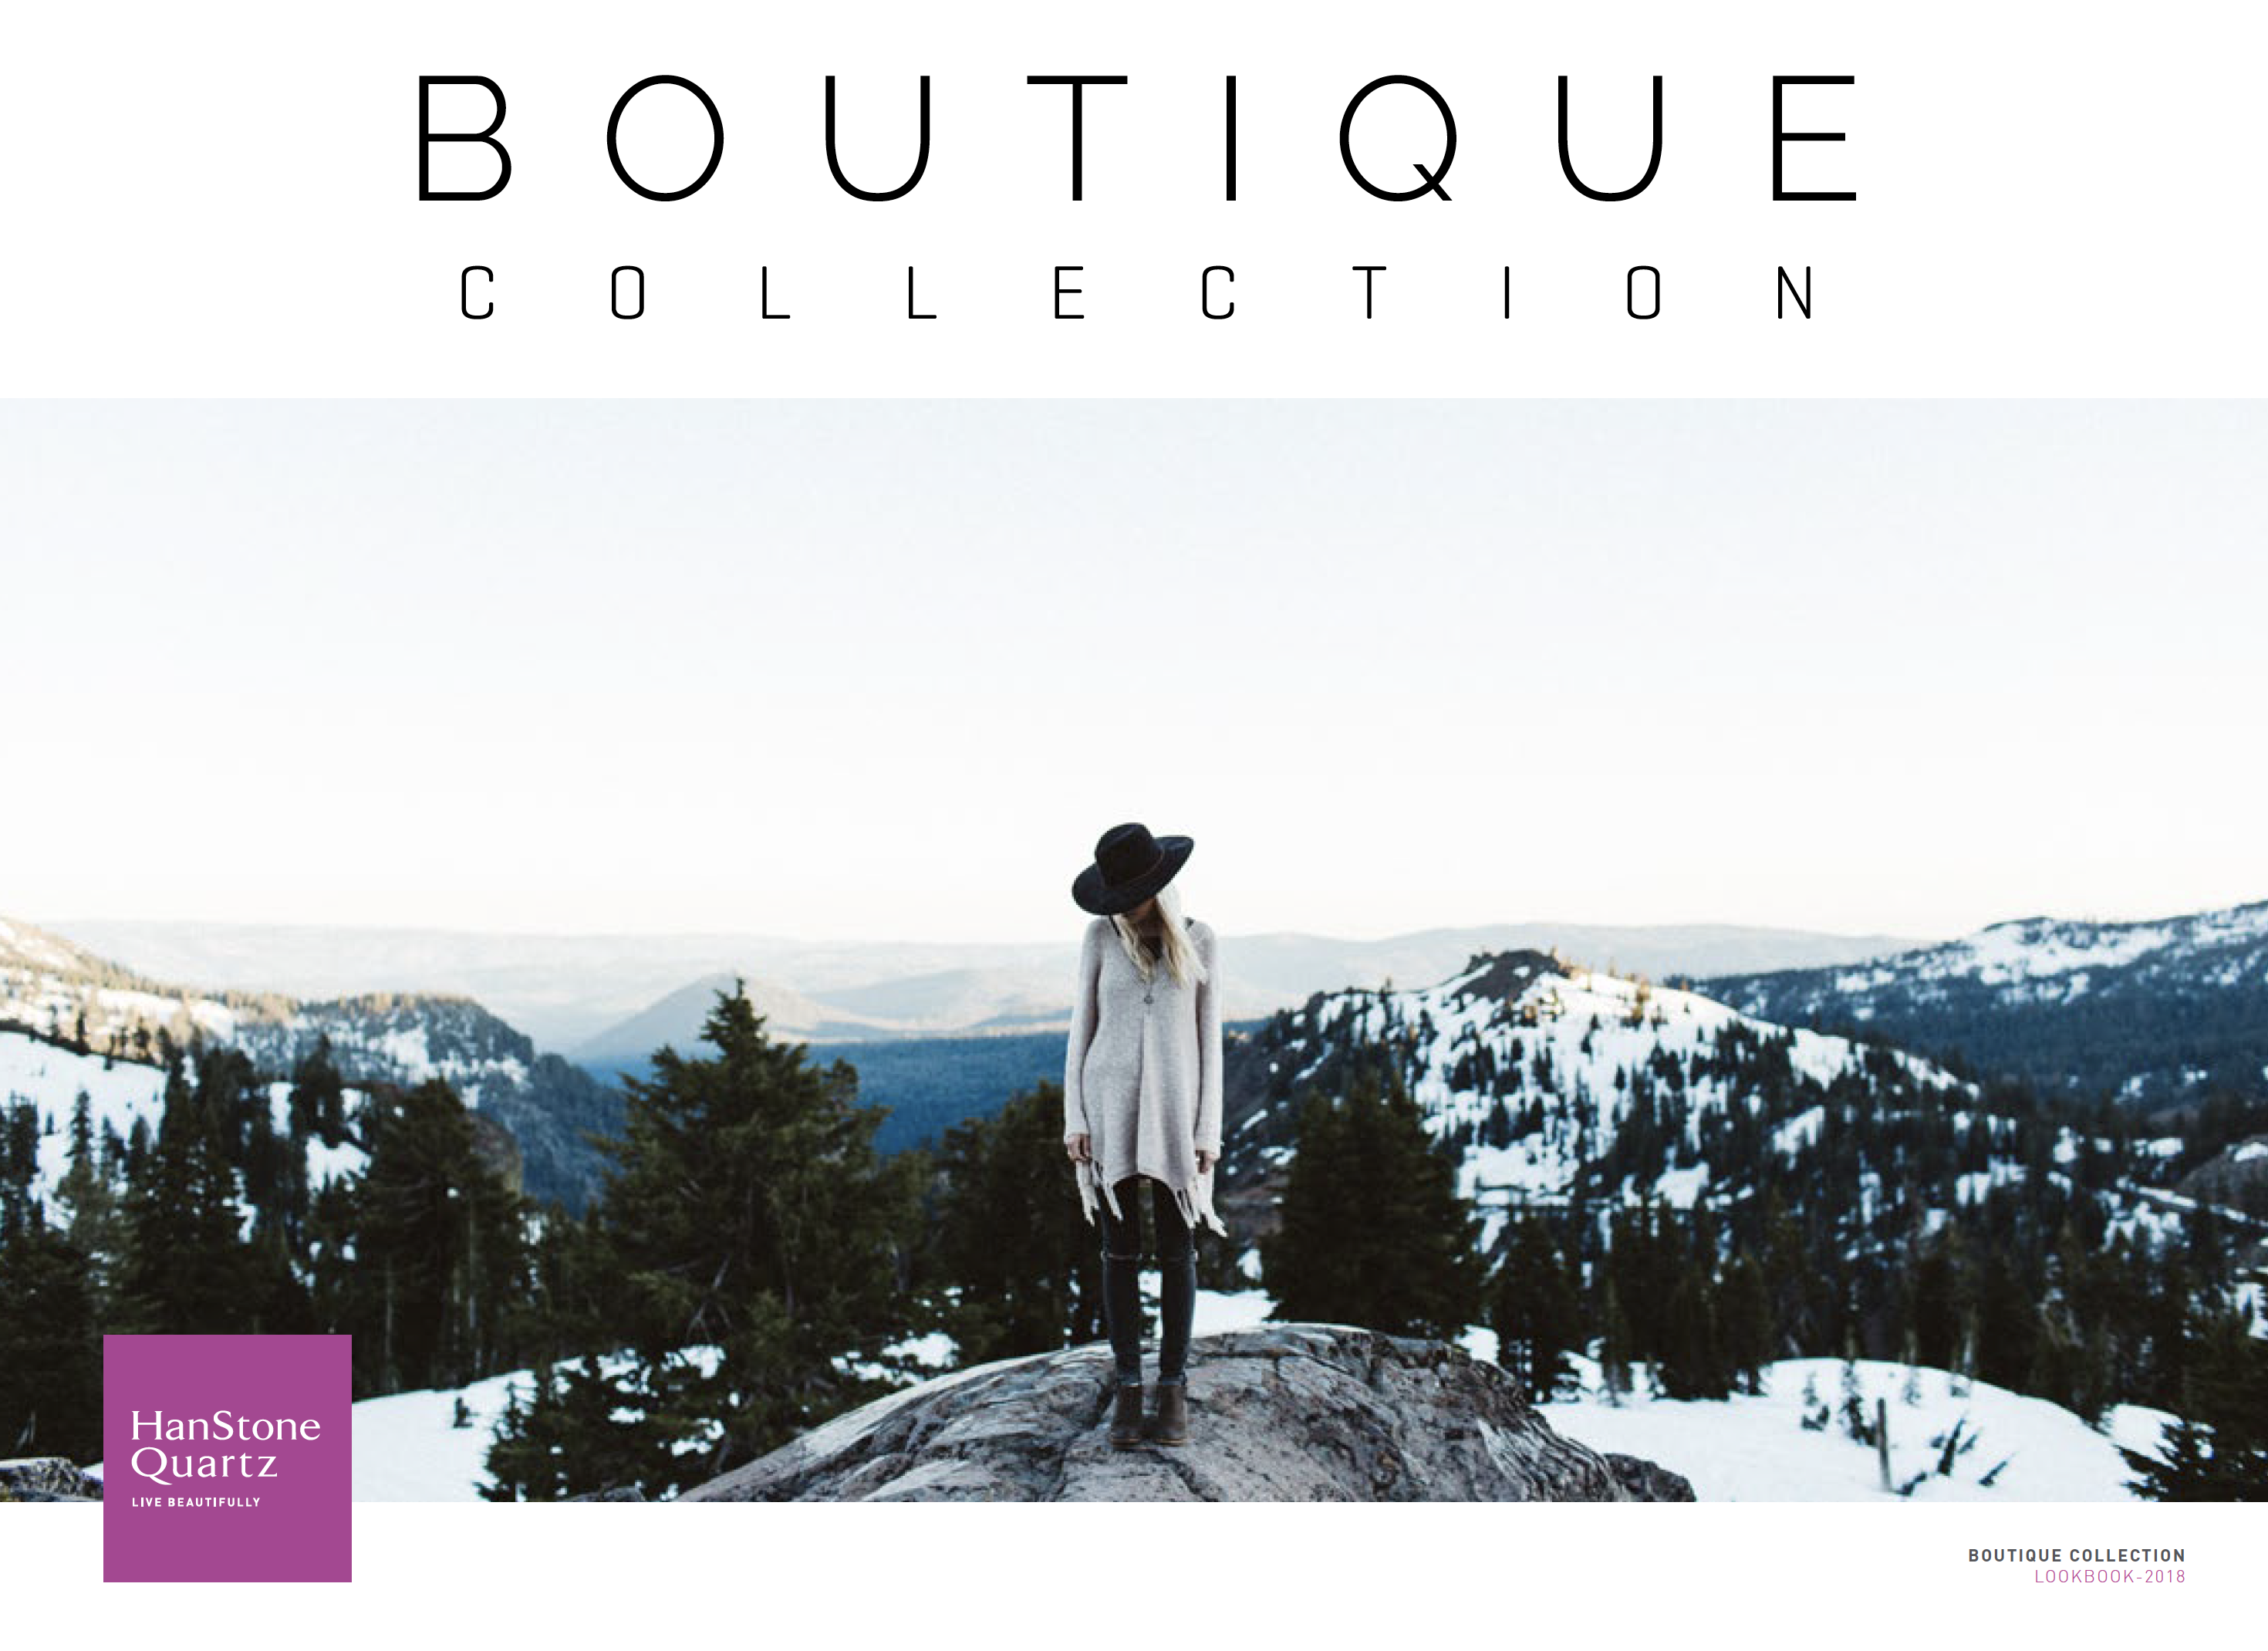 Boutique Collection Booklet